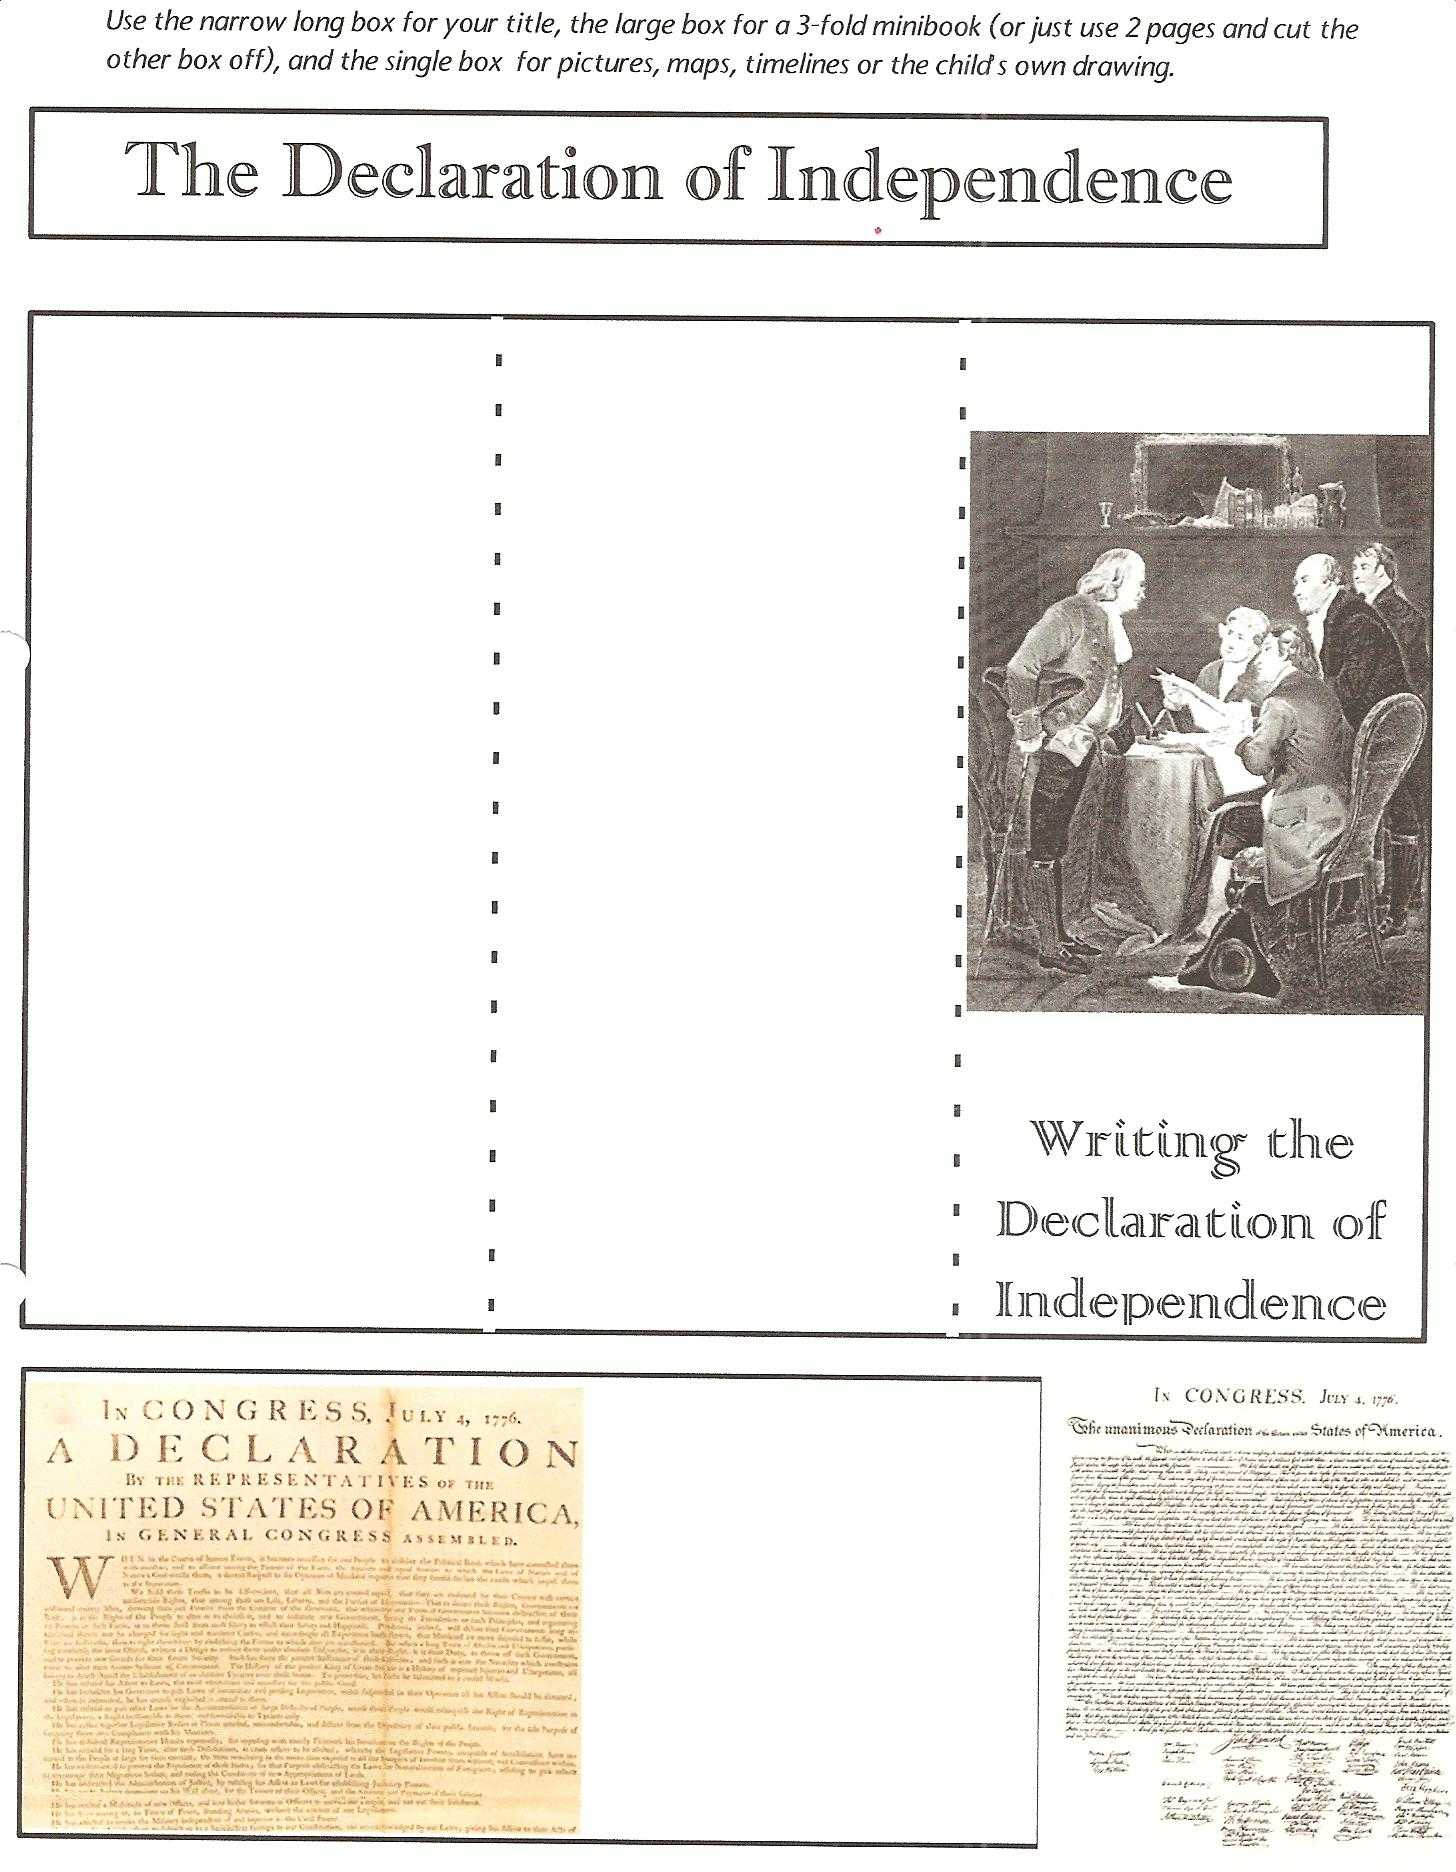 Weaknesses Of the Articles Of Confederation Worksheet Also 44 Declaration Independence Worksheets All Worksheets